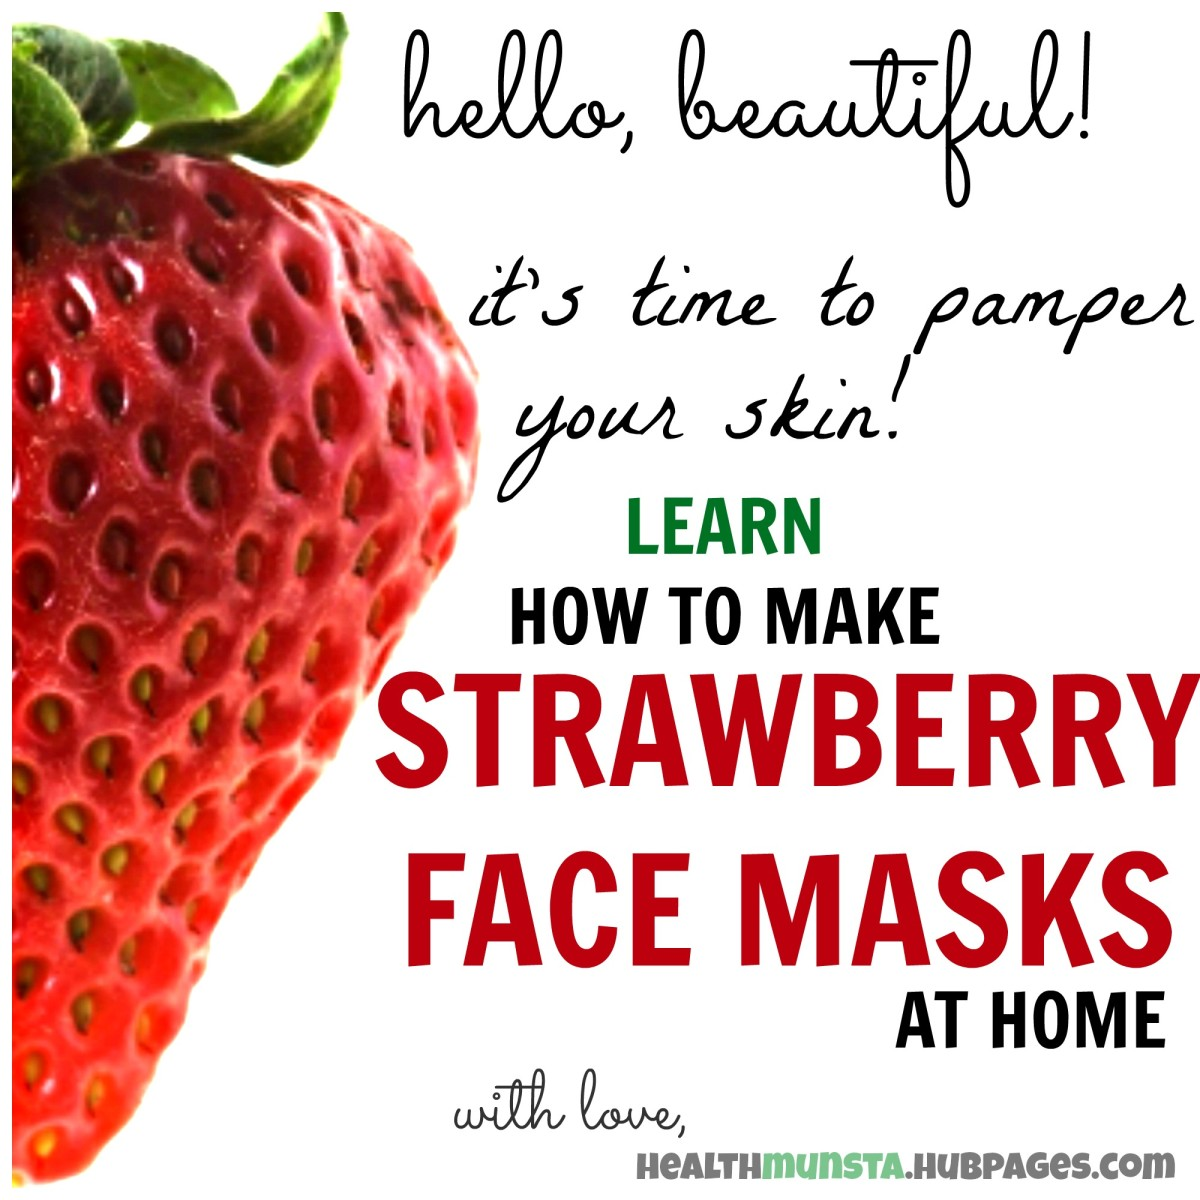 Learn how to make strawberry face masks at home, including a step-by-step guide by yours truly!